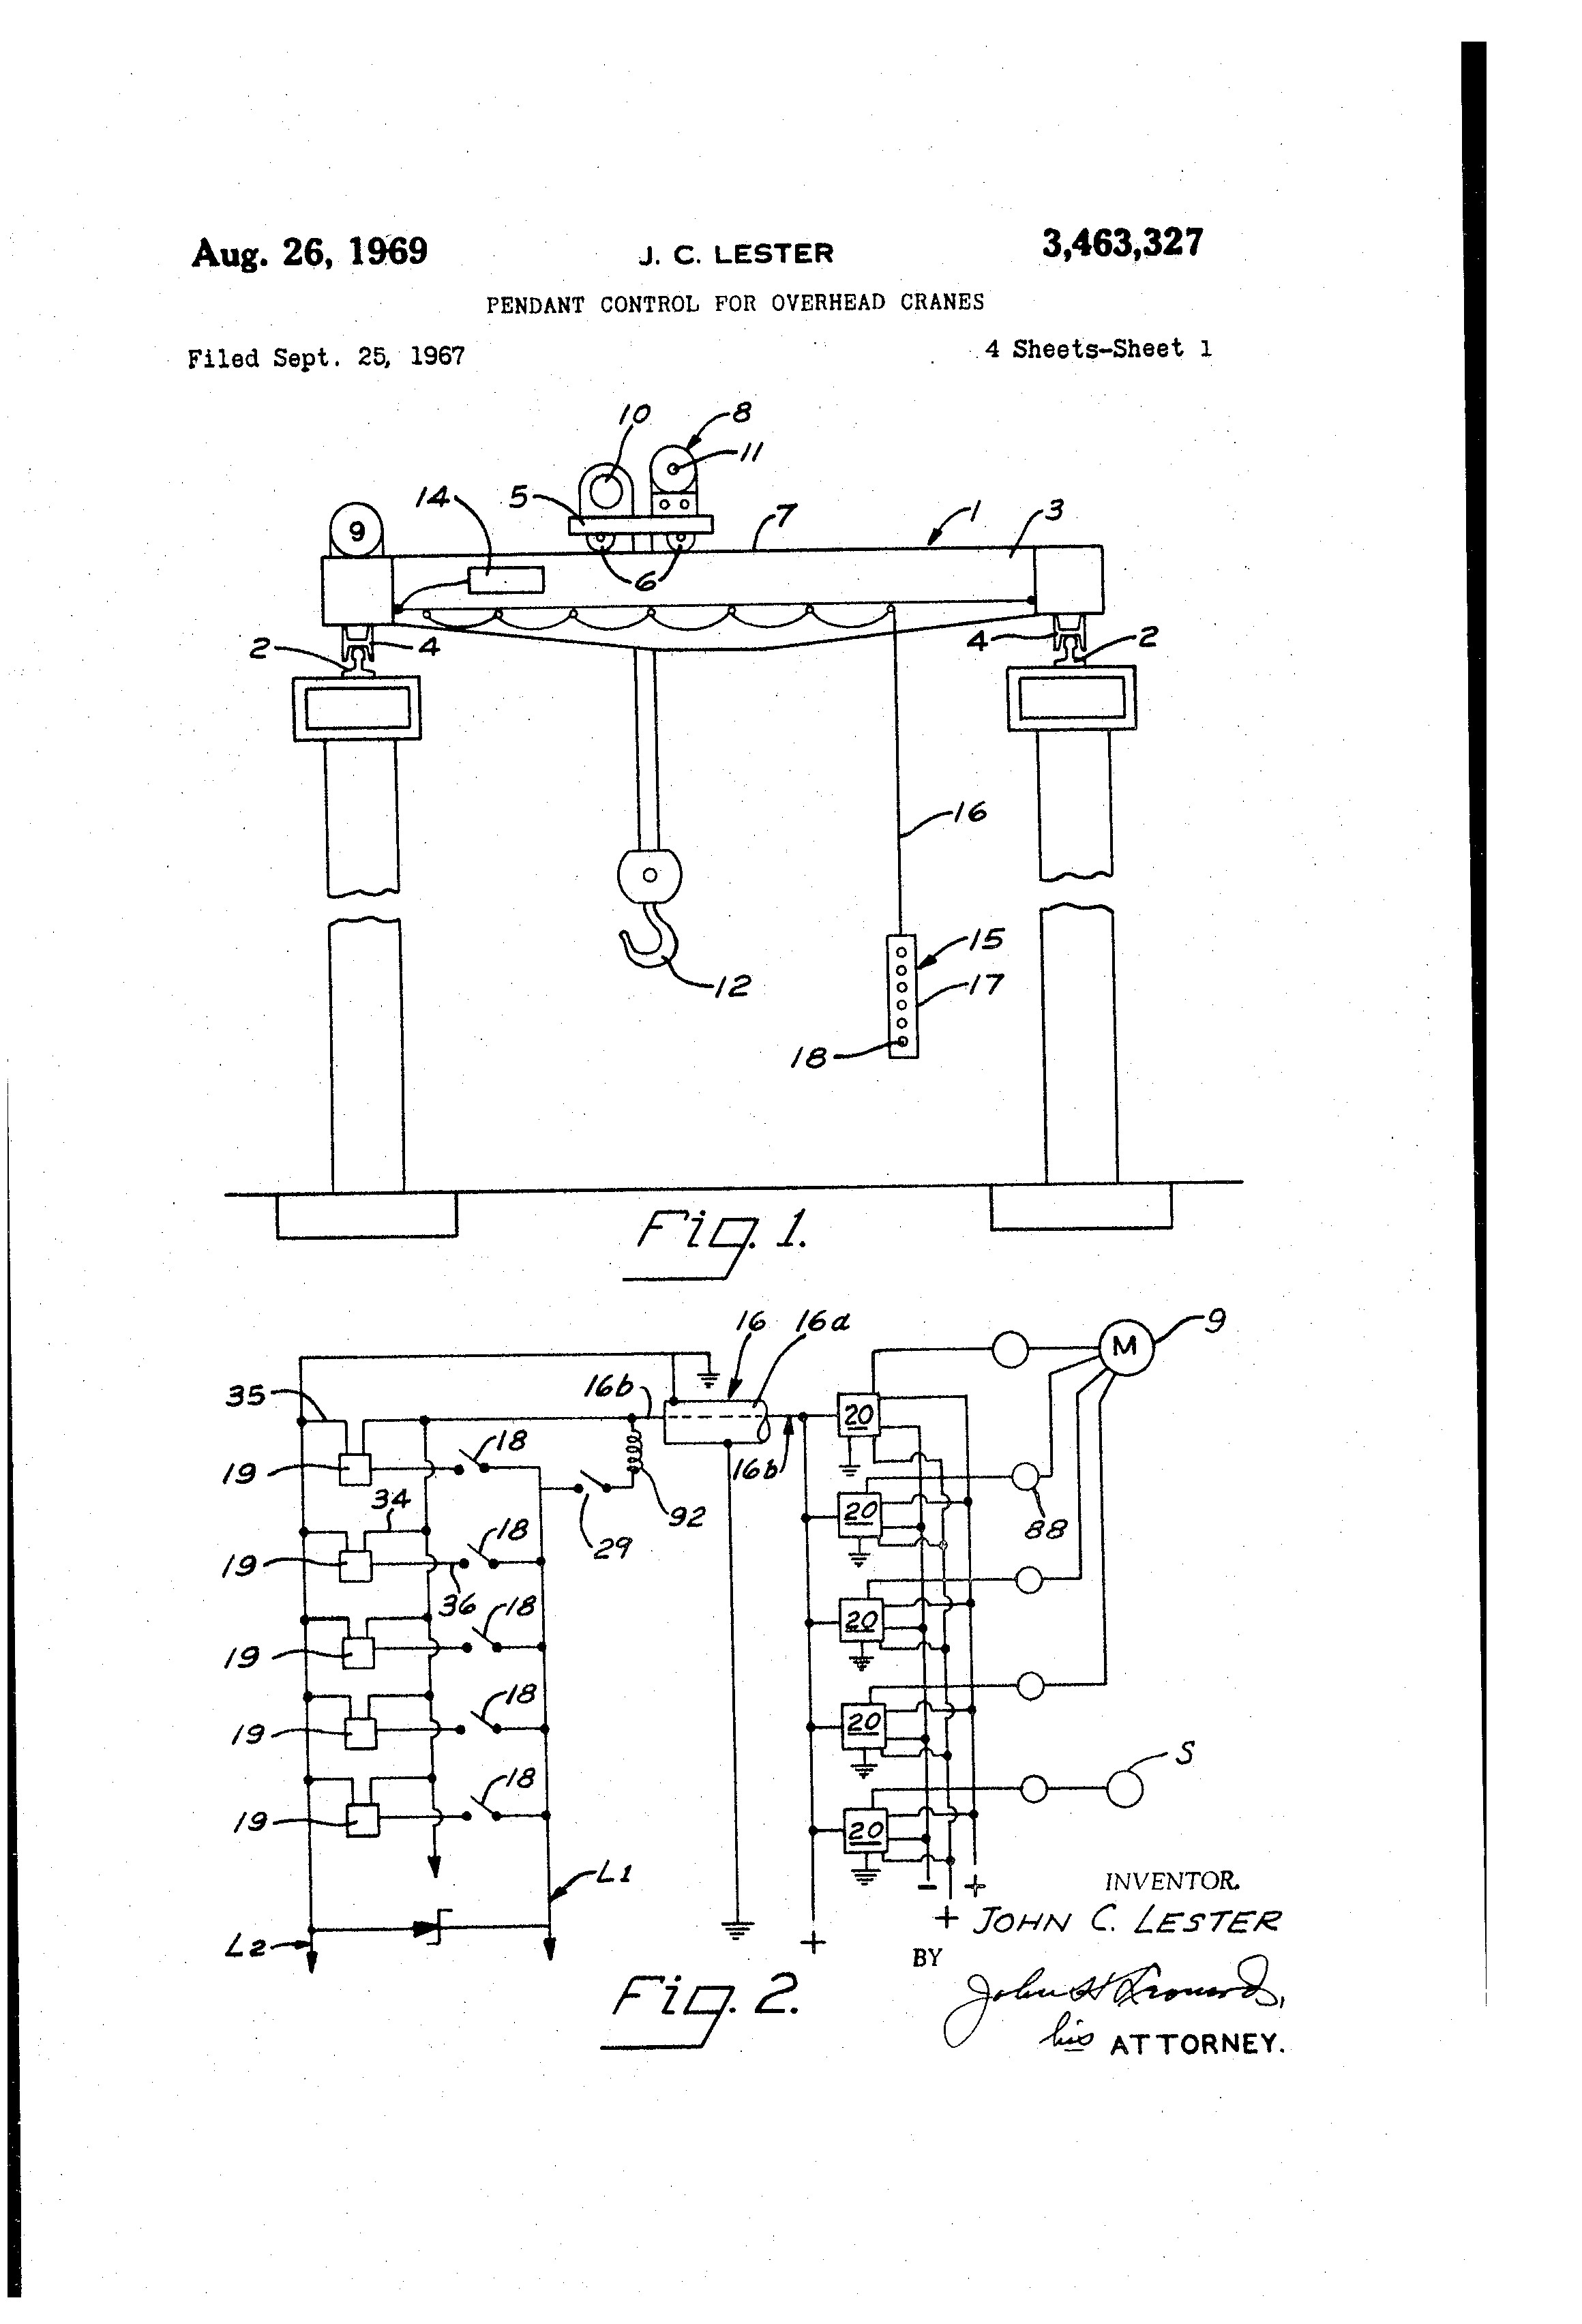 Coffing Hoist Wiring Diagram With Trolly Cm Shopstar Wiring Diagram Begeboy Wiring Diagram Source